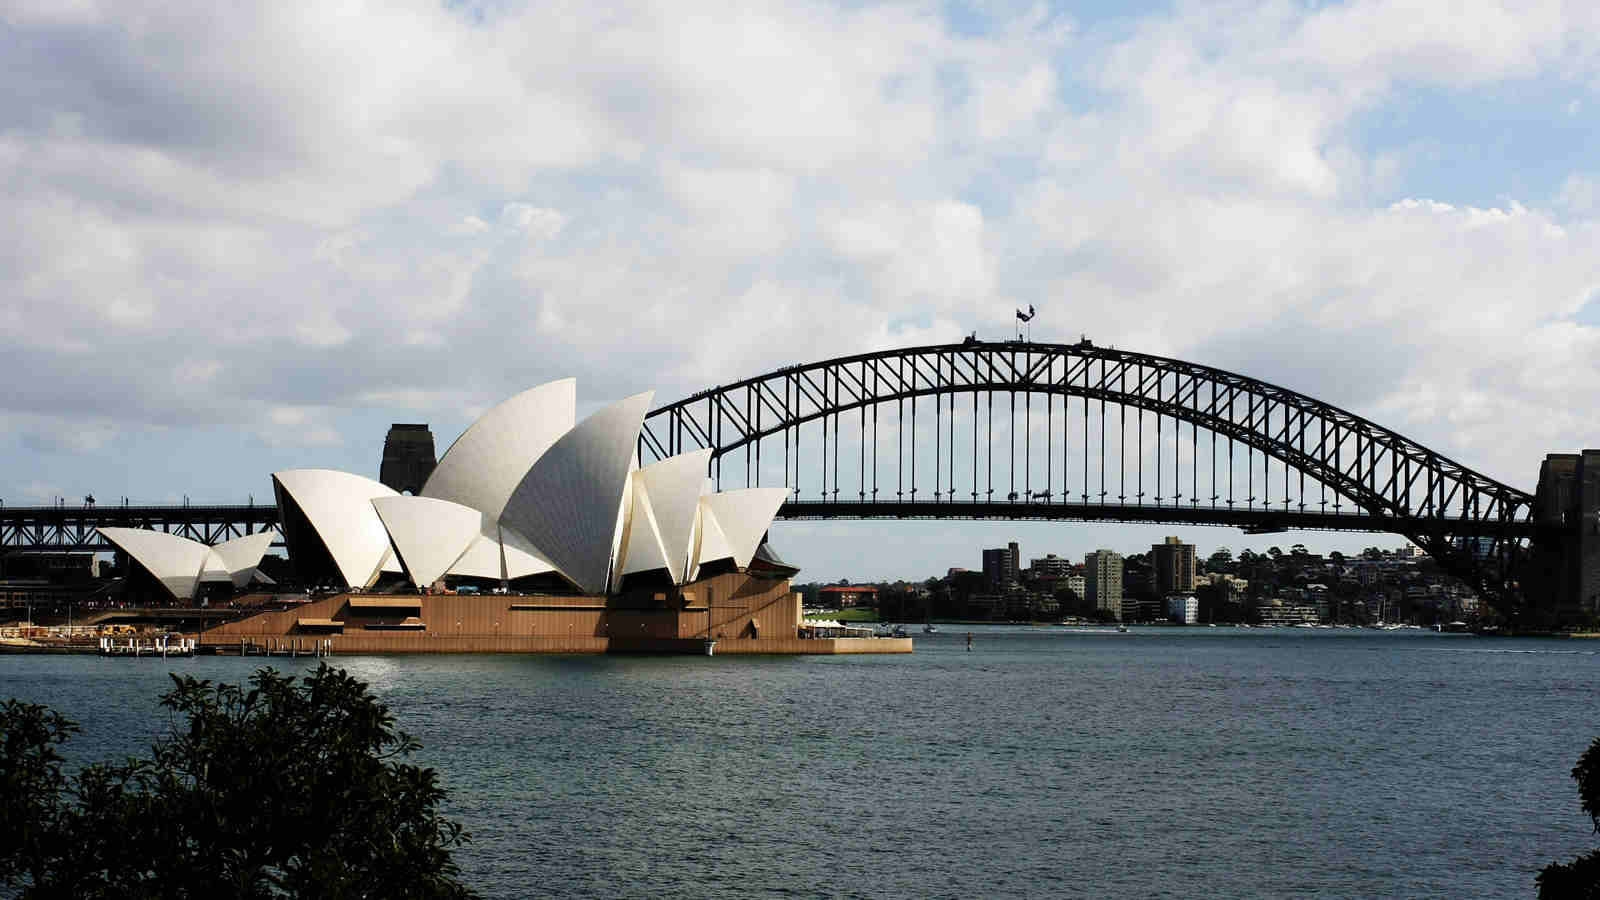 Chinese advised against traveling to Australia